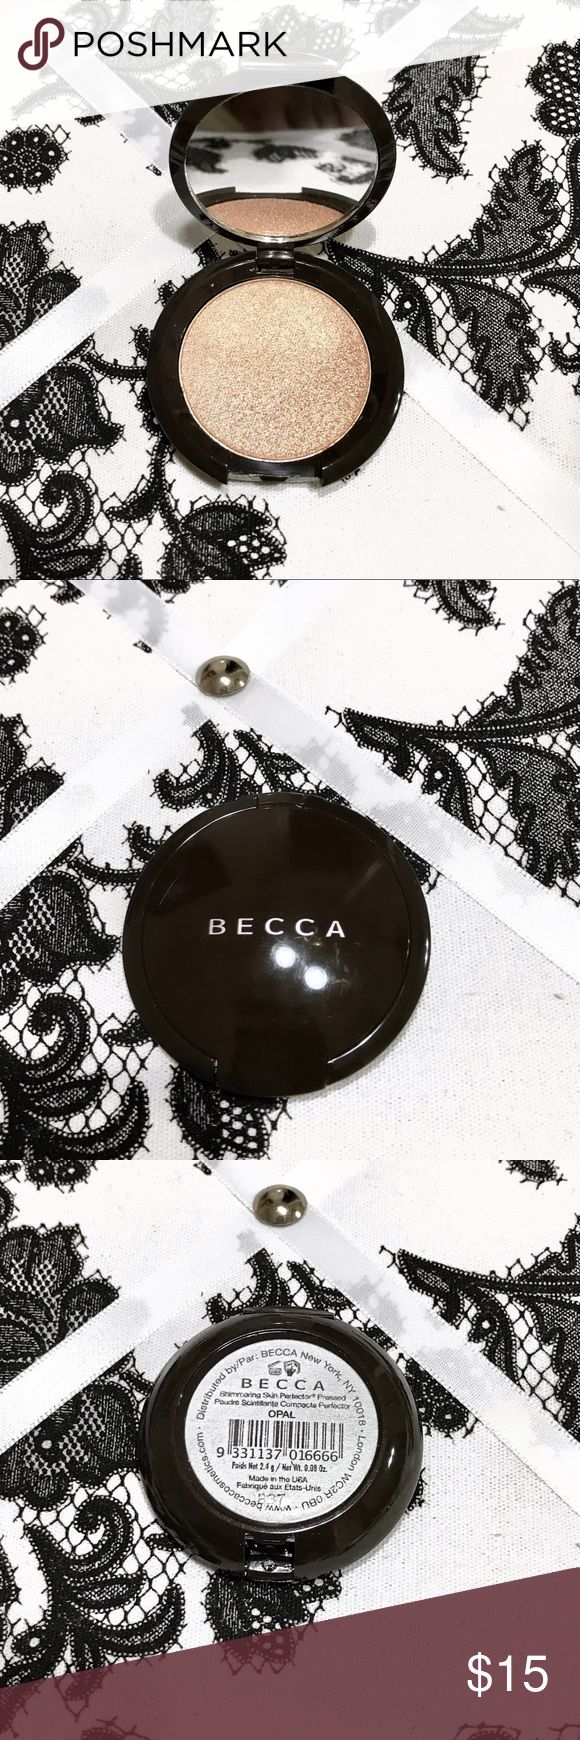 🔥PRICE DROP last call*MINI BECCA OPAL HIGHLIGHTER *PRICE FIRM BEFORE DELETING* Mini becca opal highlighter. Will last you forever cause a little goes a long way. Perfect for on the go & glow touch ups. Looks amazing on all skin tones. Never used no box Sephora Makeup Luminizer